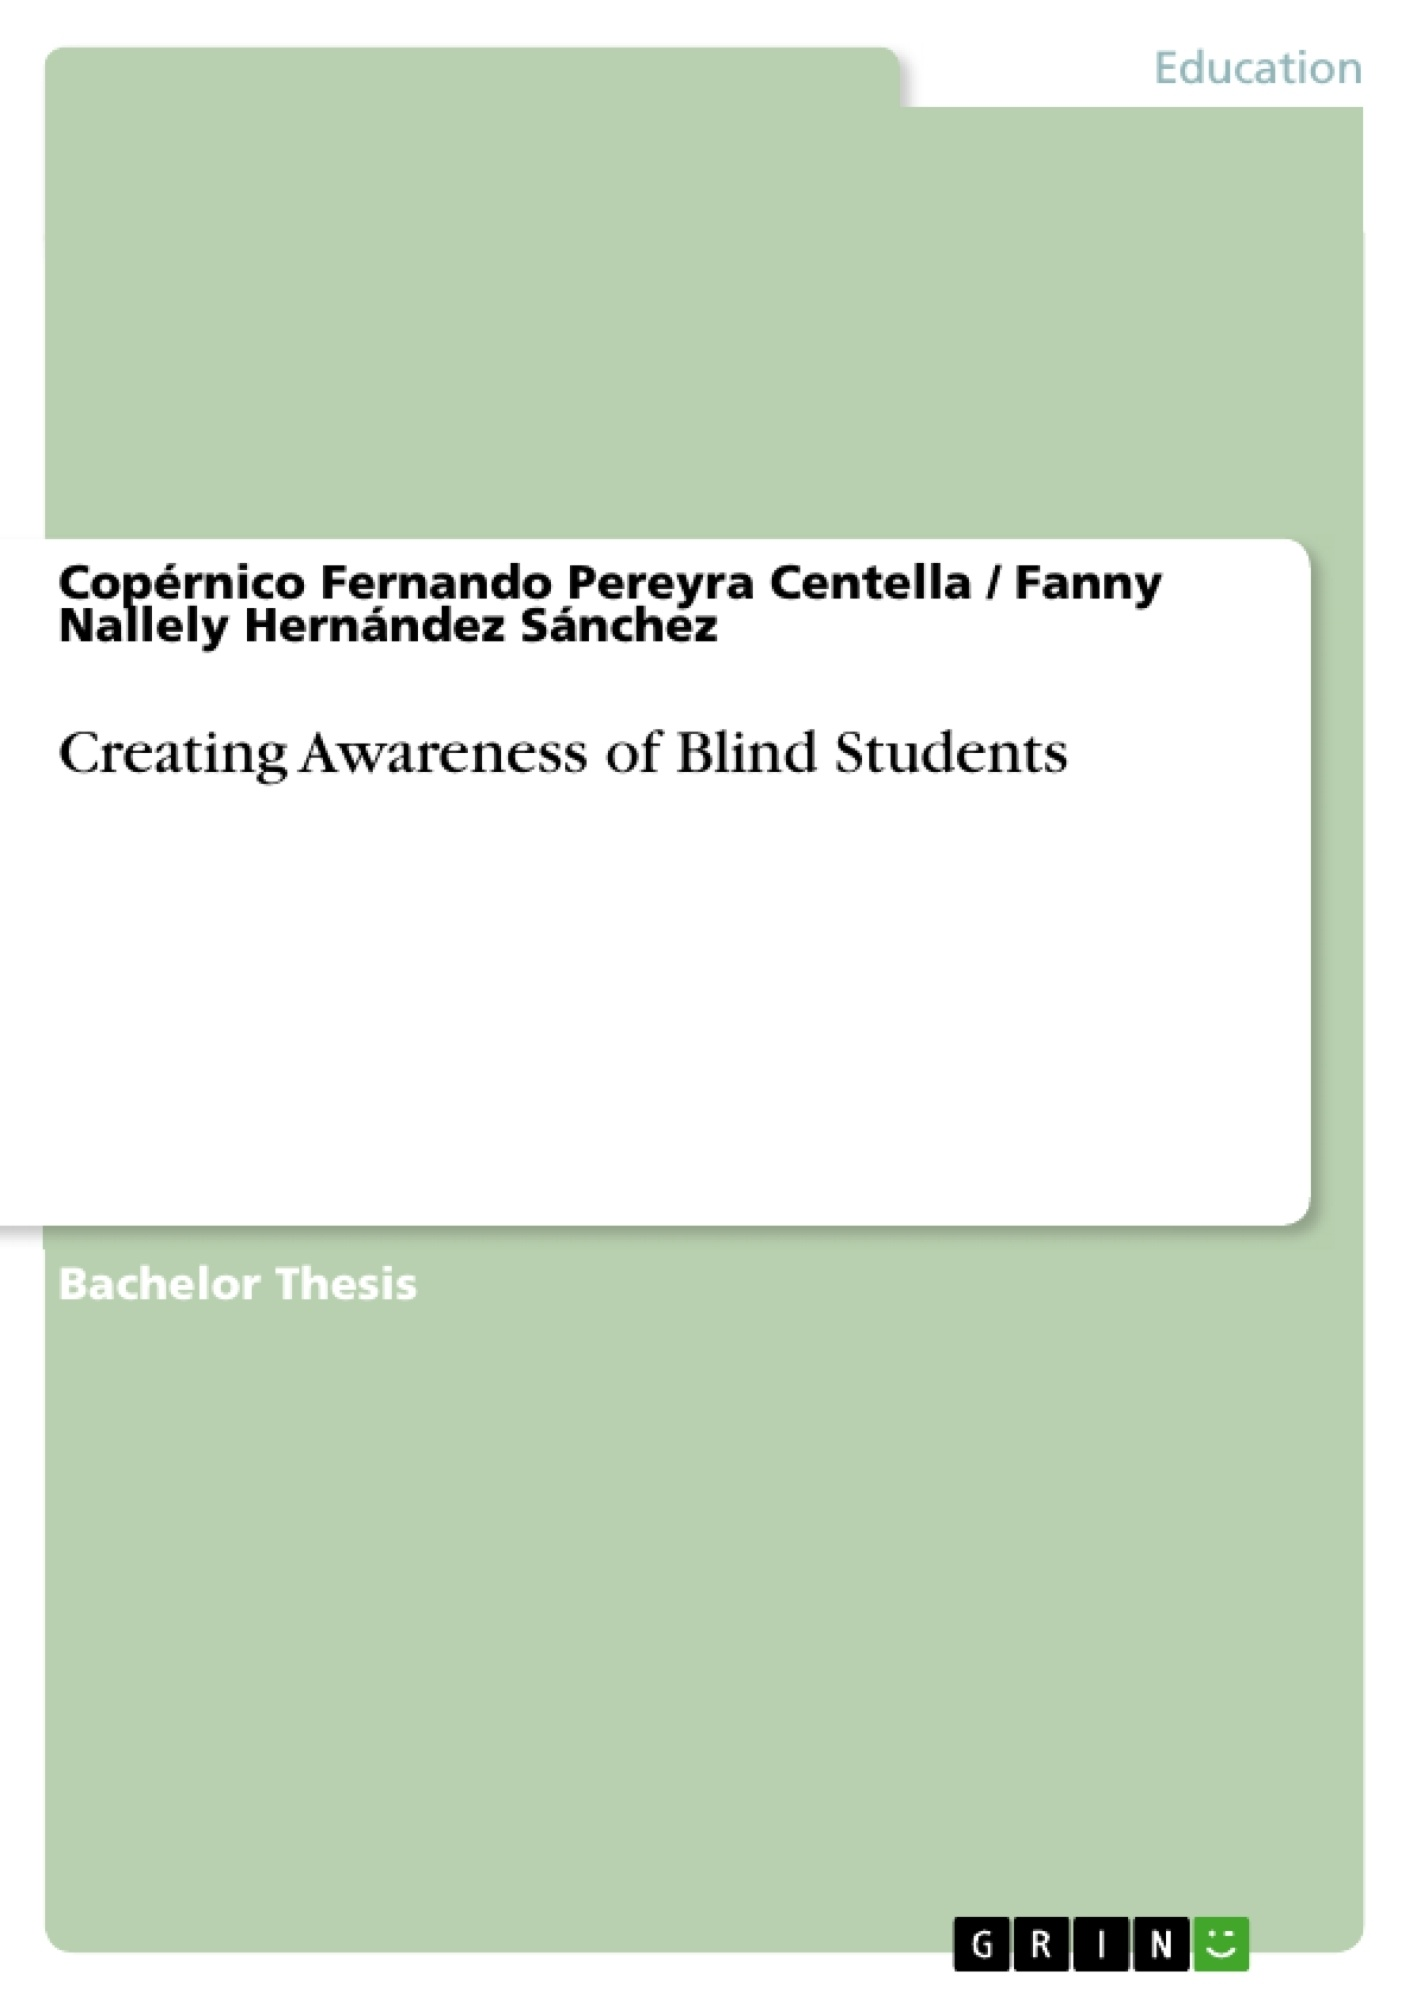 Title: Creating Awareness of Blind Students